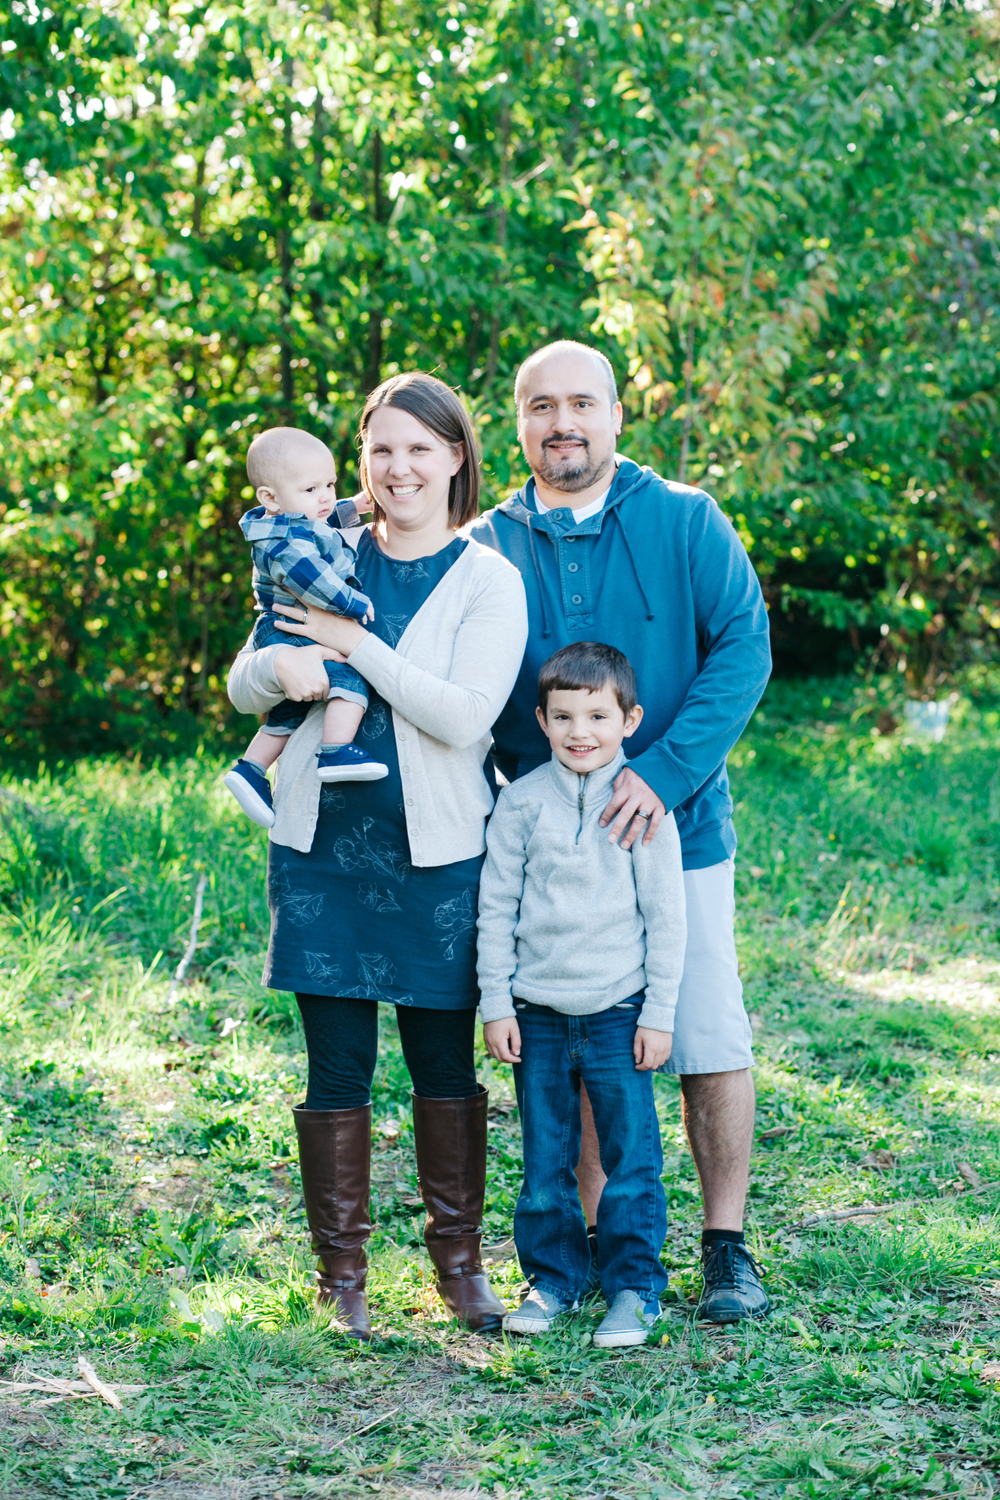 011-bellingham-family-photographer-bellewood-acres-katheryn-moran-photography.jpg